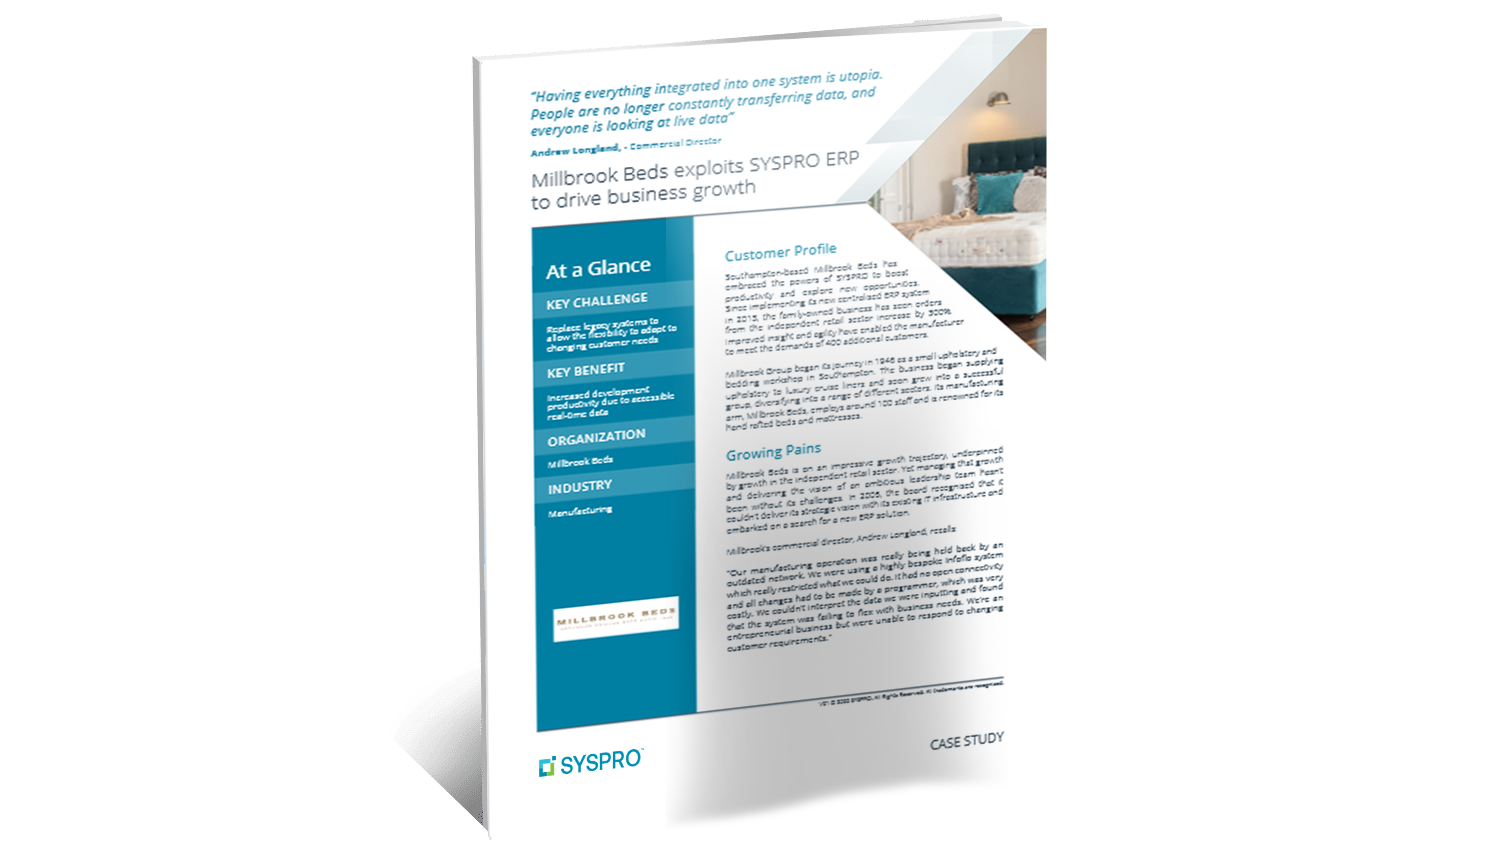 SYSPRO-ERP-software-system-millbrook-beds-success-story